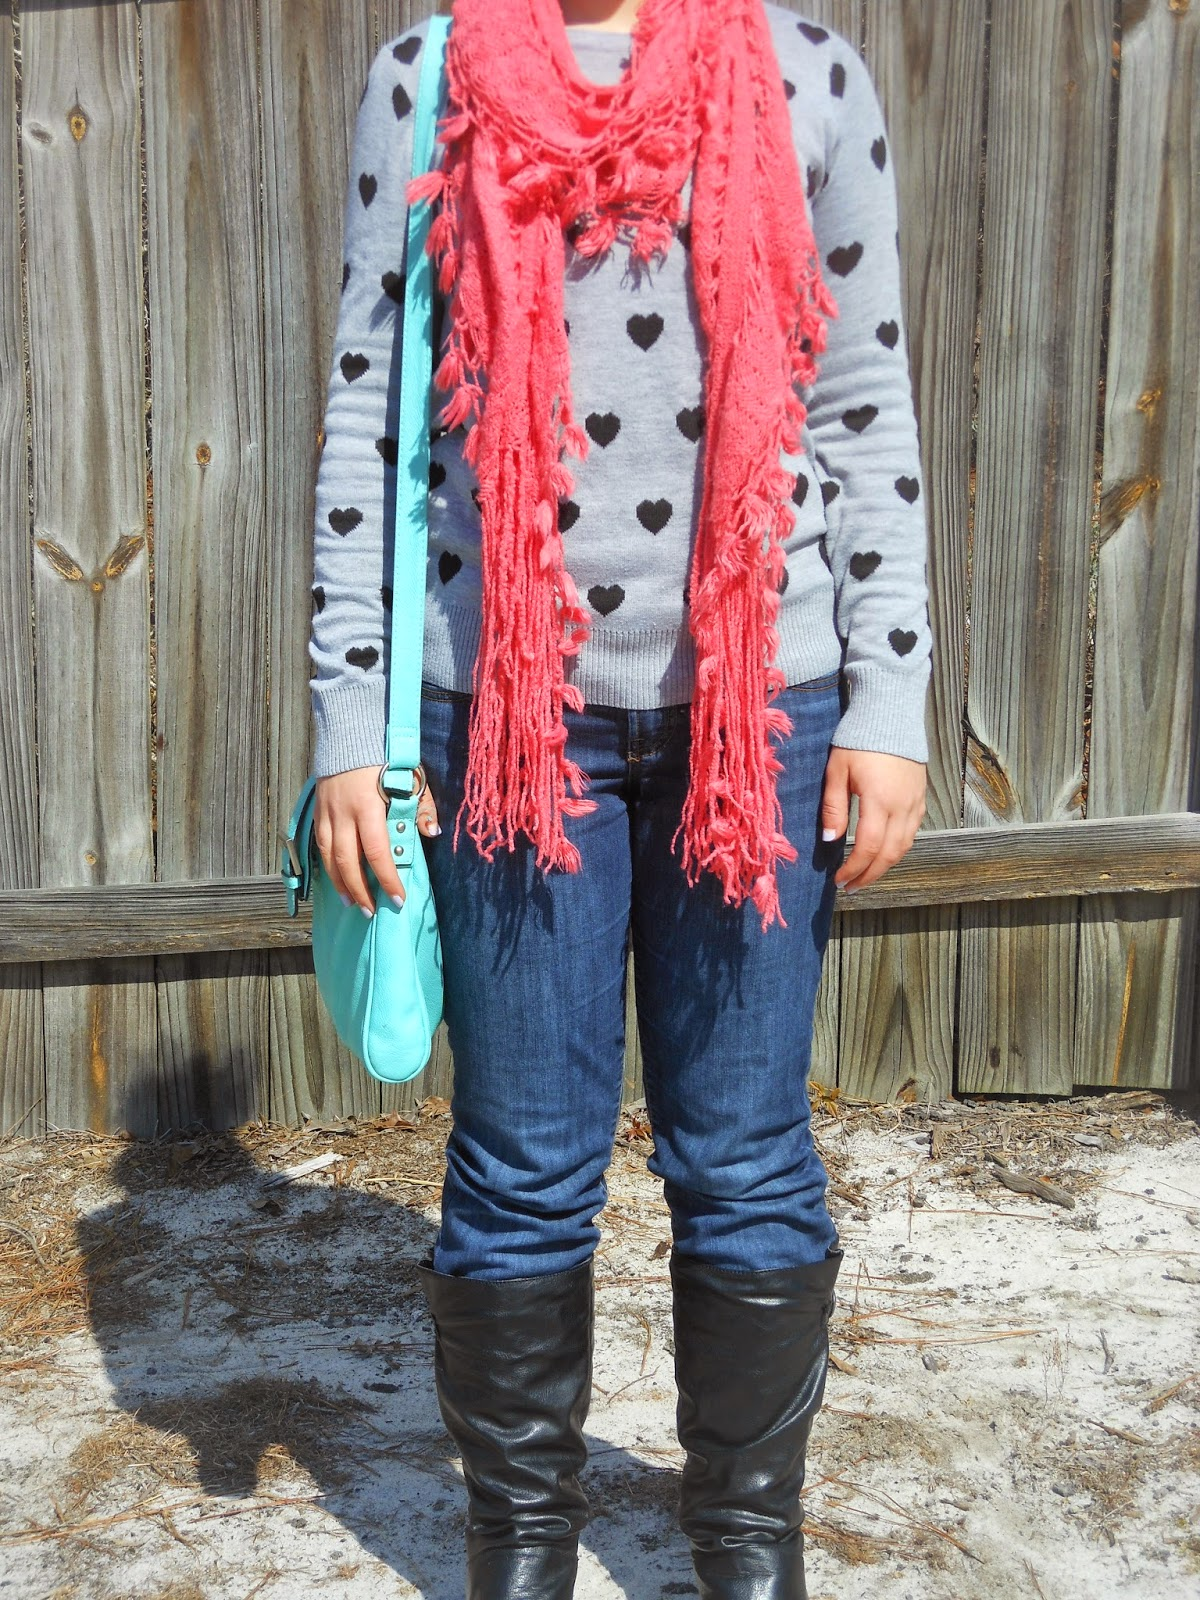 Bright Pink and Turquoise. Heart sweater, jeans, bright pink scarf, black boots, turquoise cross body purse.